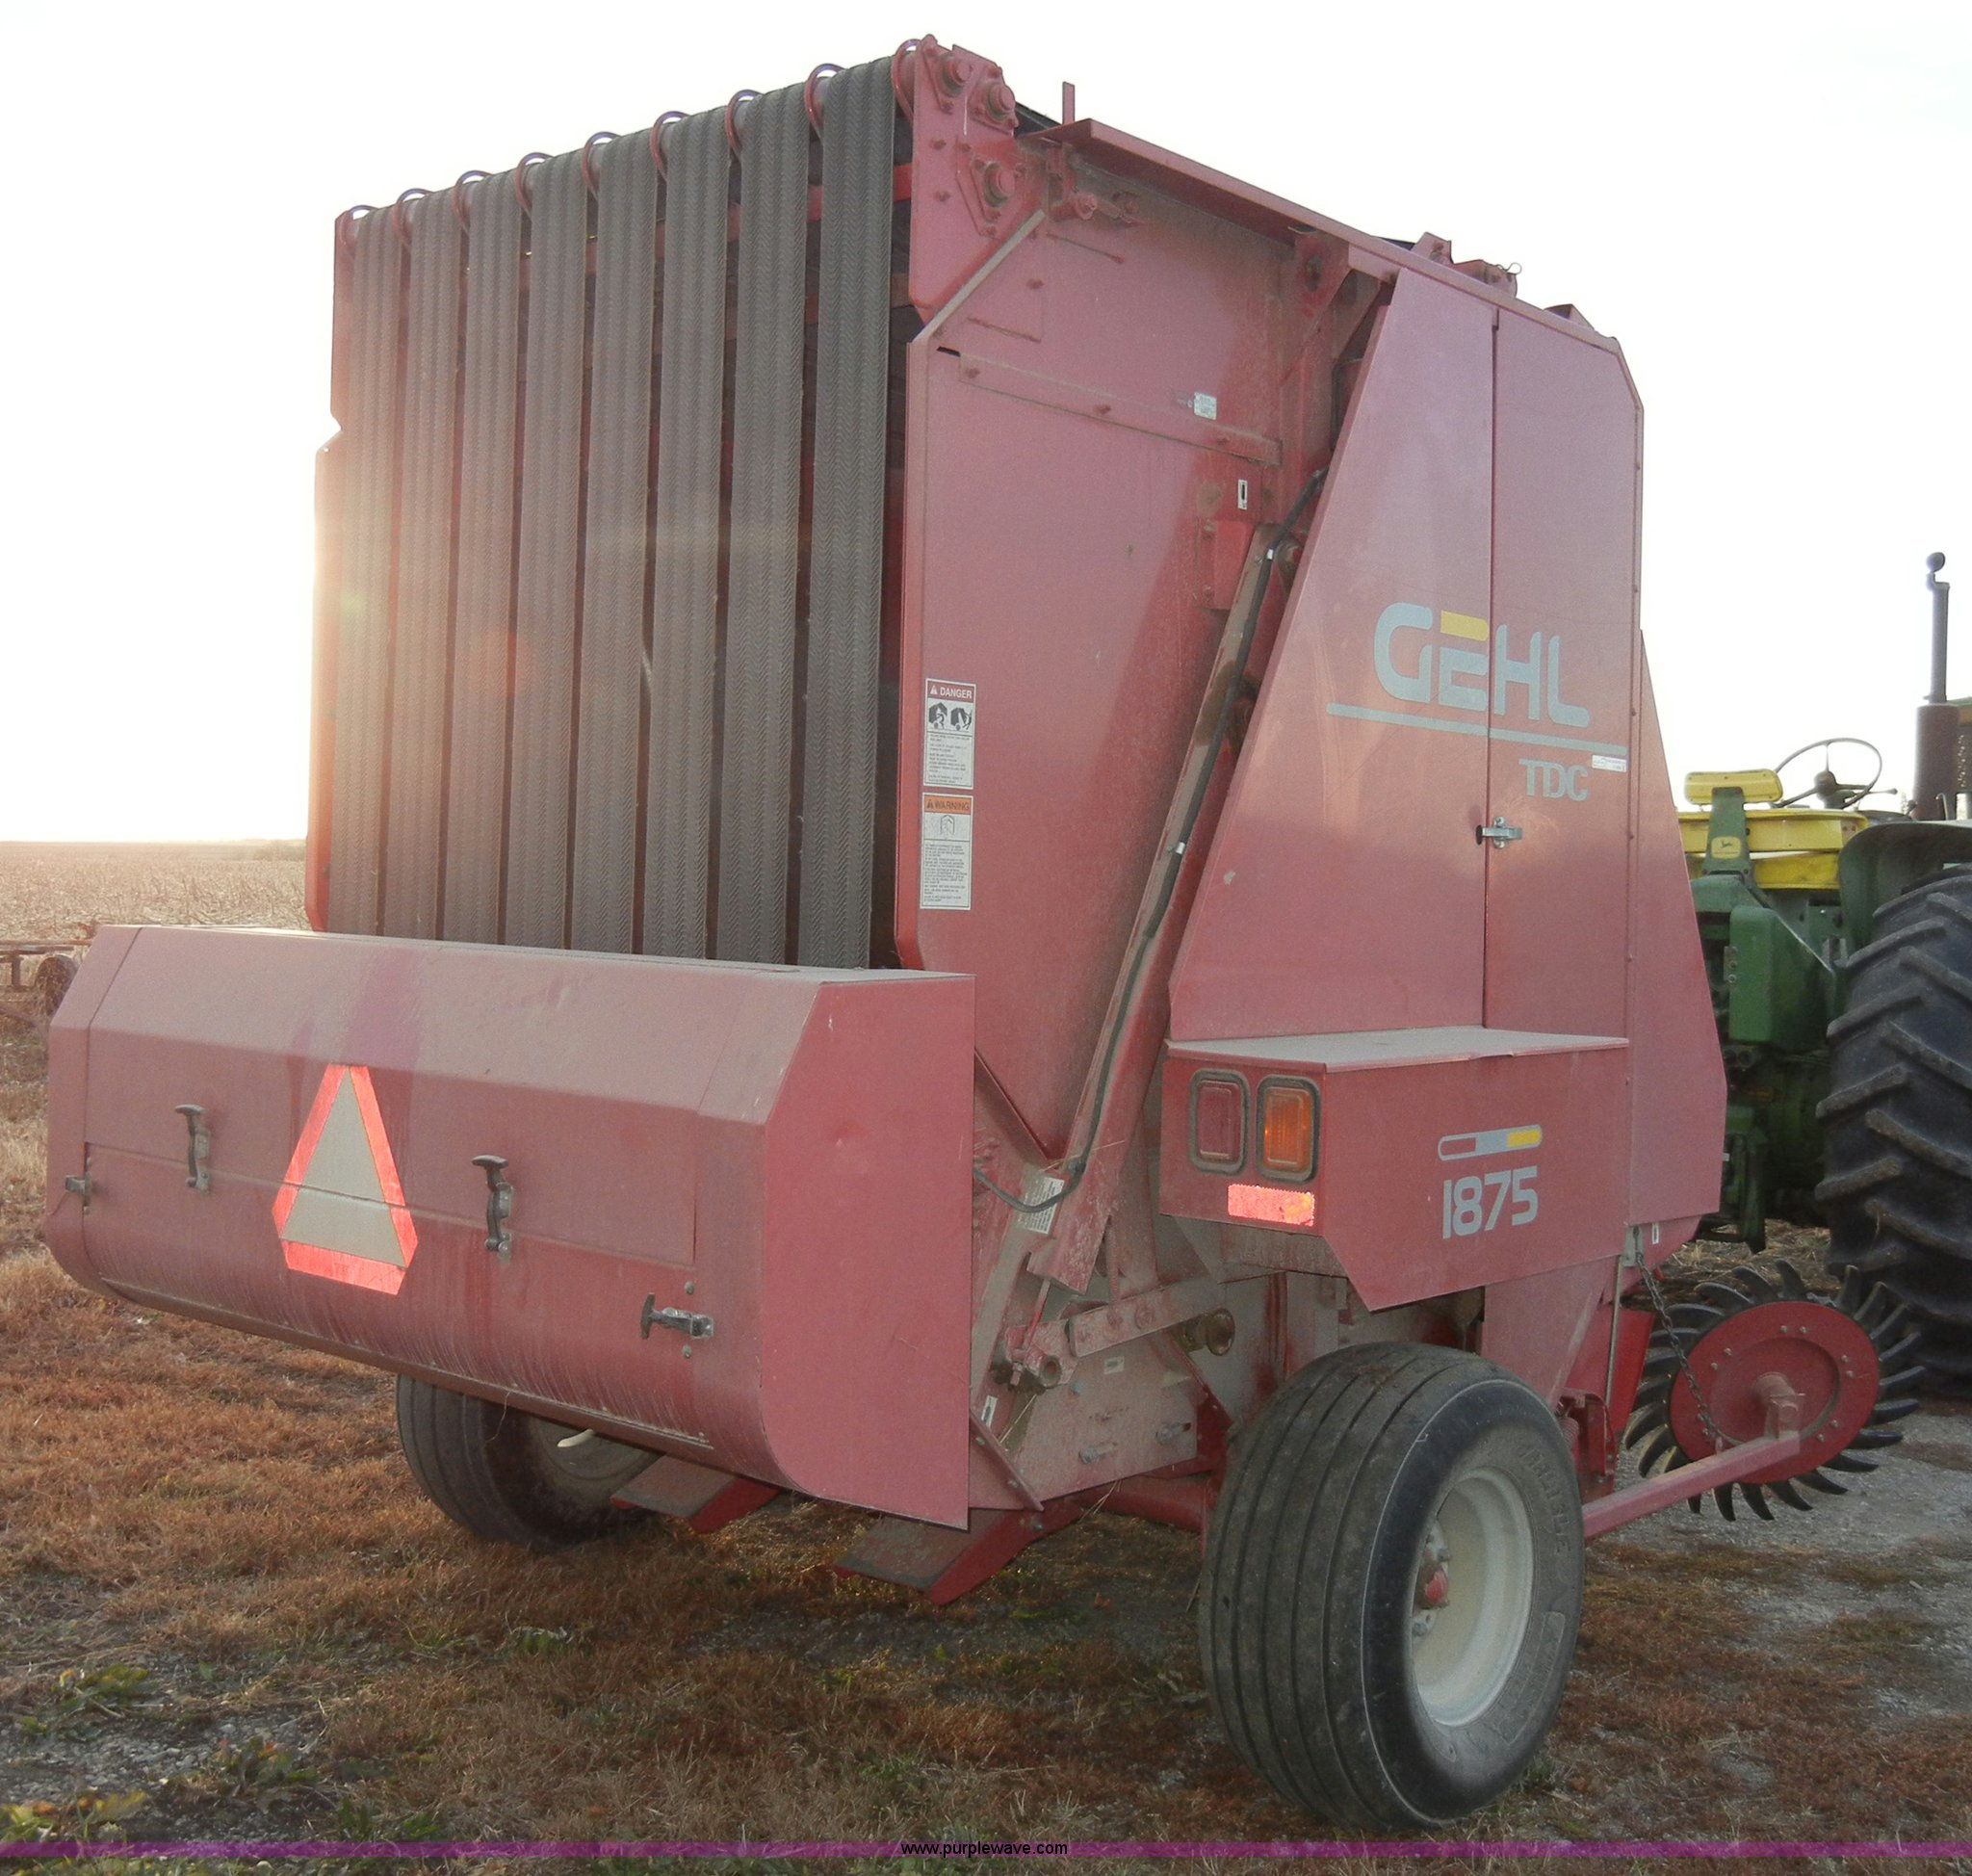 ... Gehl TDC 1875 round baler Full size in new window ...